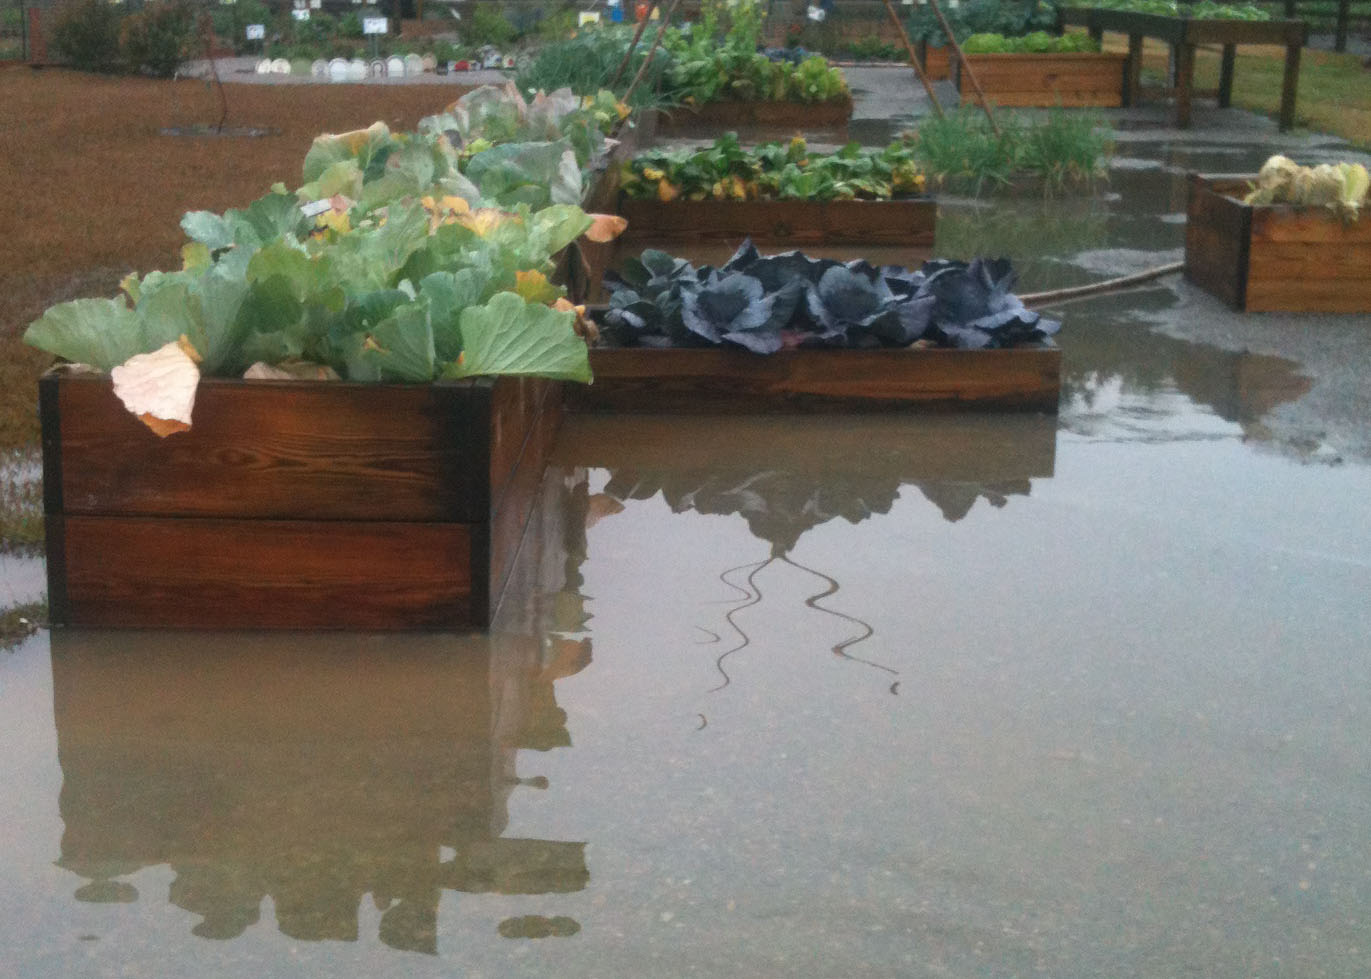 011 Without raised beds providing adequate drainage.jpg thumbnail